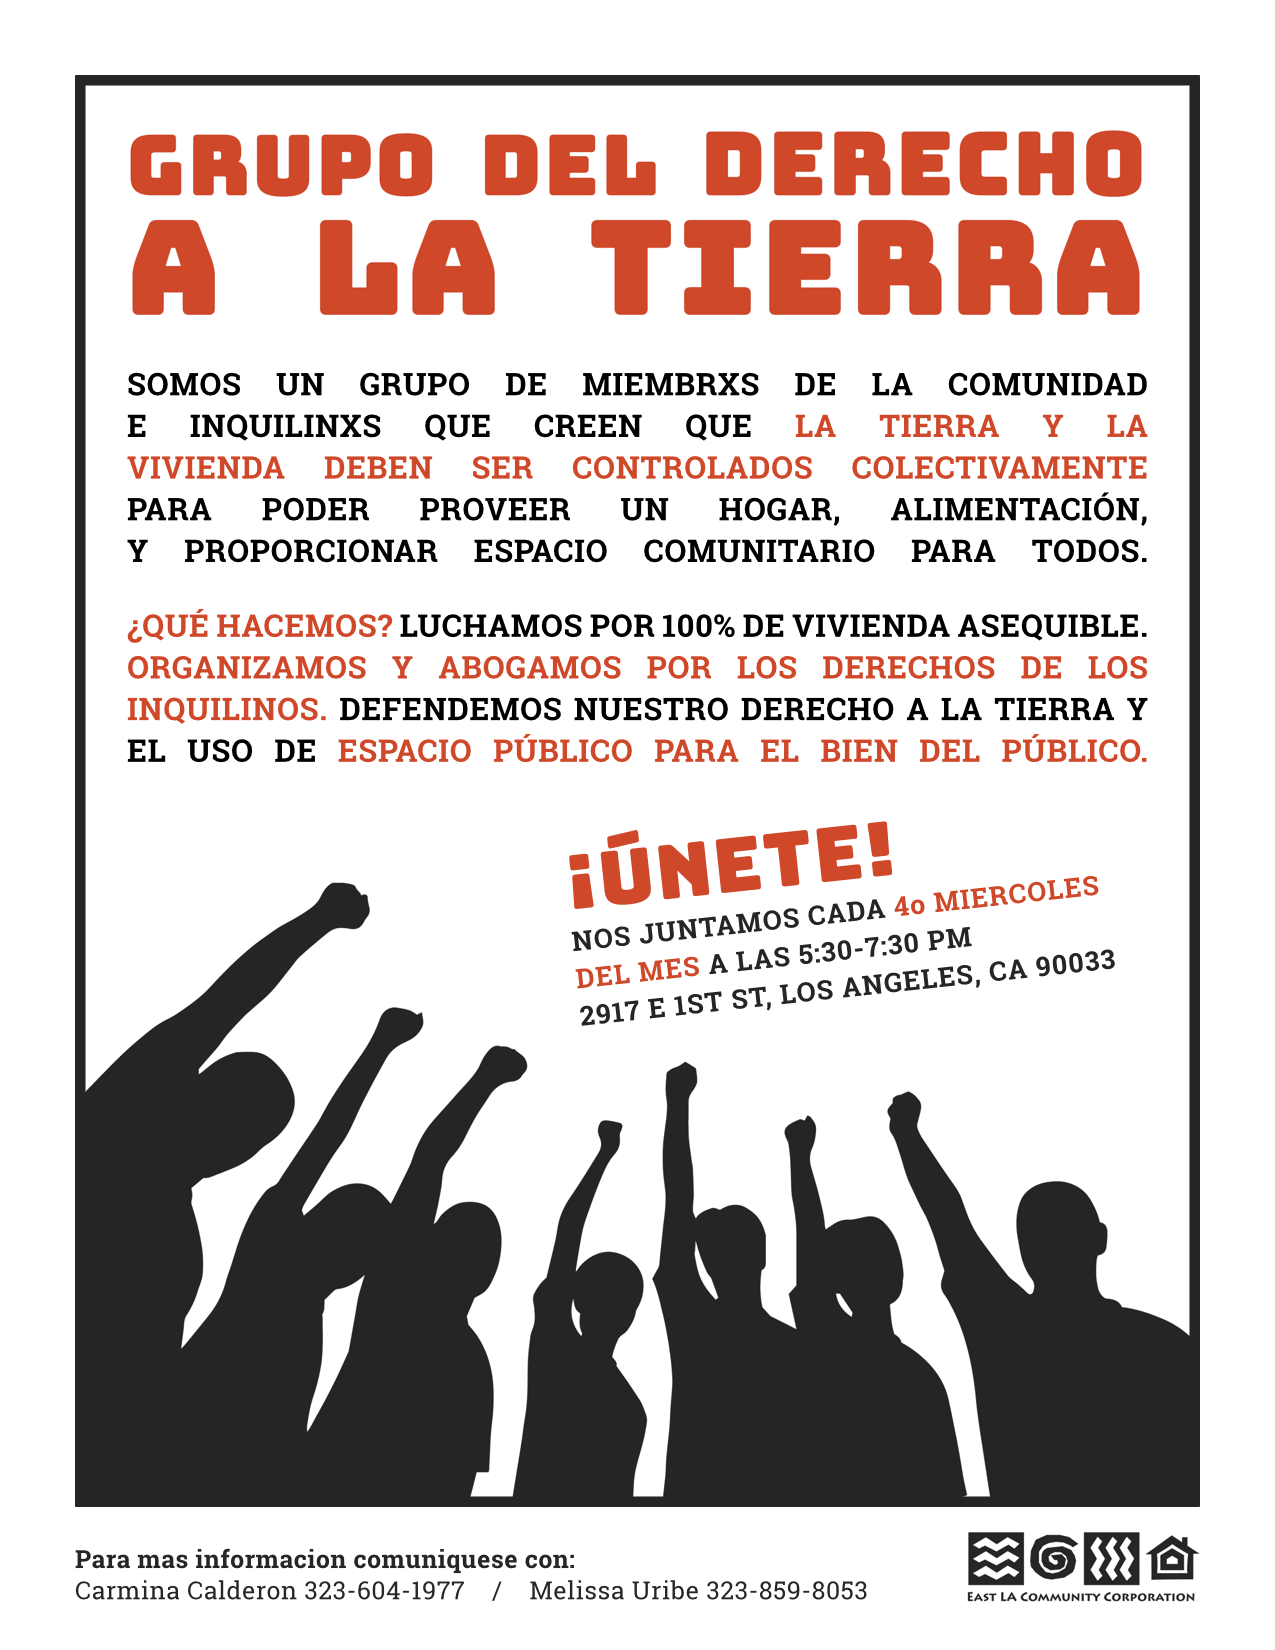 Groupo Del Derecho a la Tierra - East LA Community Corporation